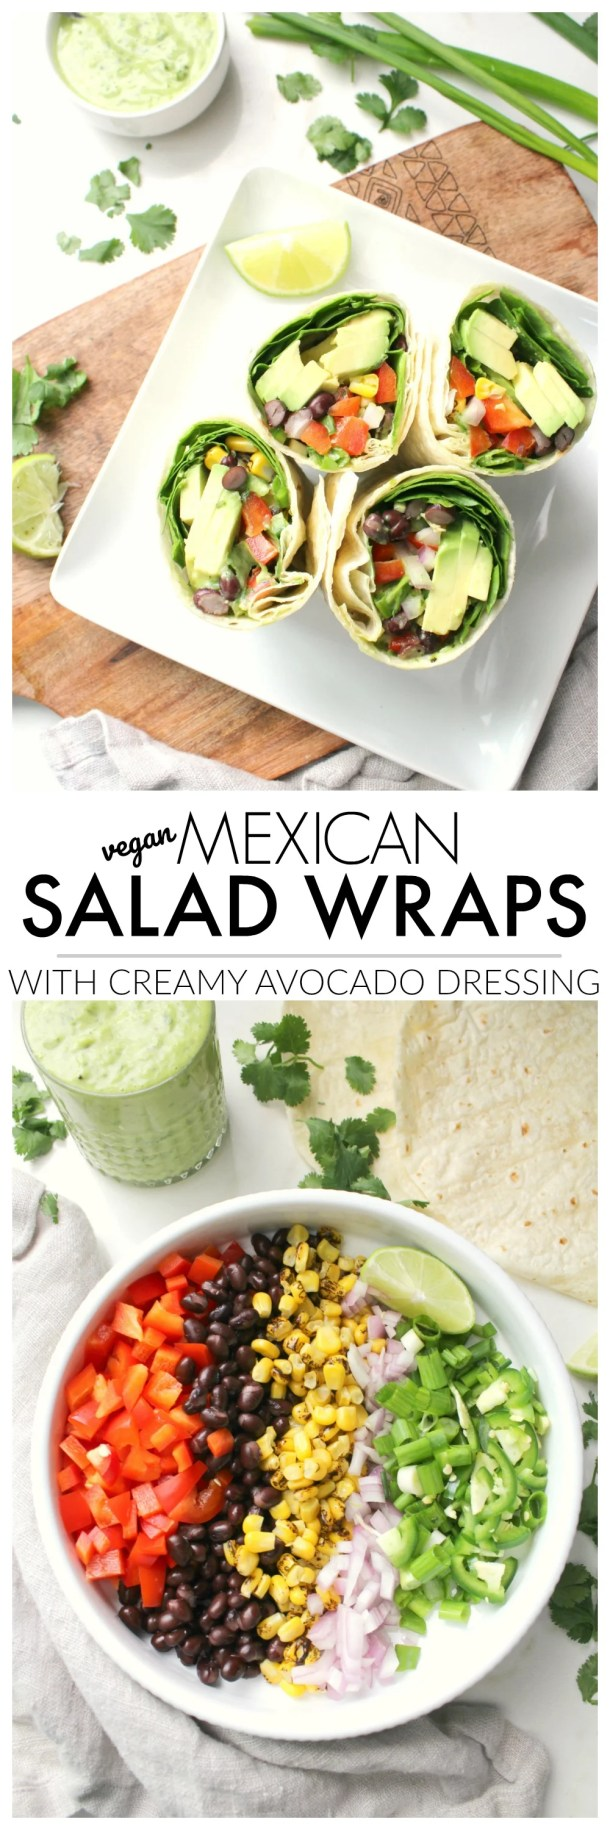 Quick, healthy and filling - theseVegan Mexican Salad Wraps with Creamy Avocado Dressing are a great make ahead lunch, quick dinner or simple snack   ThisSavoryVegan.com #vegan #plantbased #veganrecipe